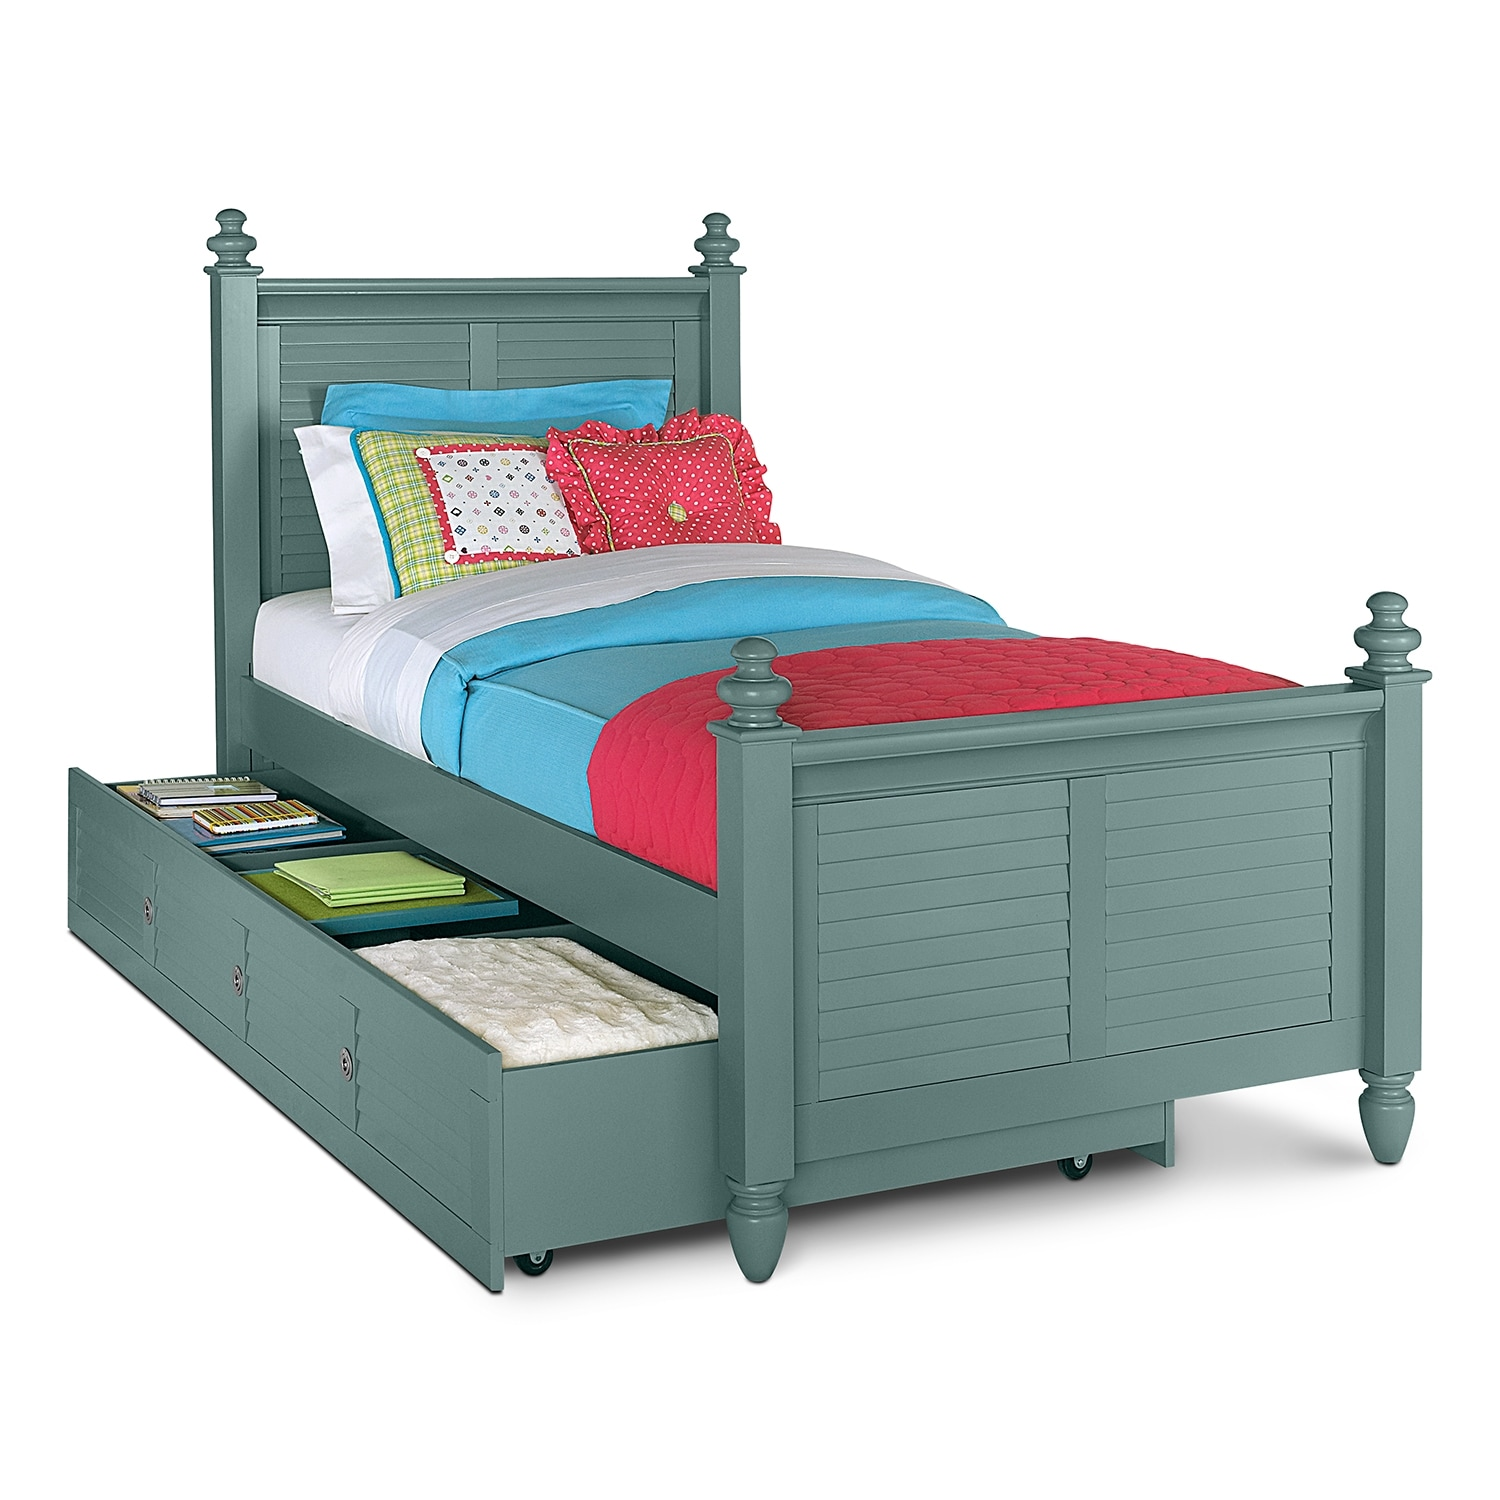 Seaside Full Bed With Trundle Blue Value City Furniture